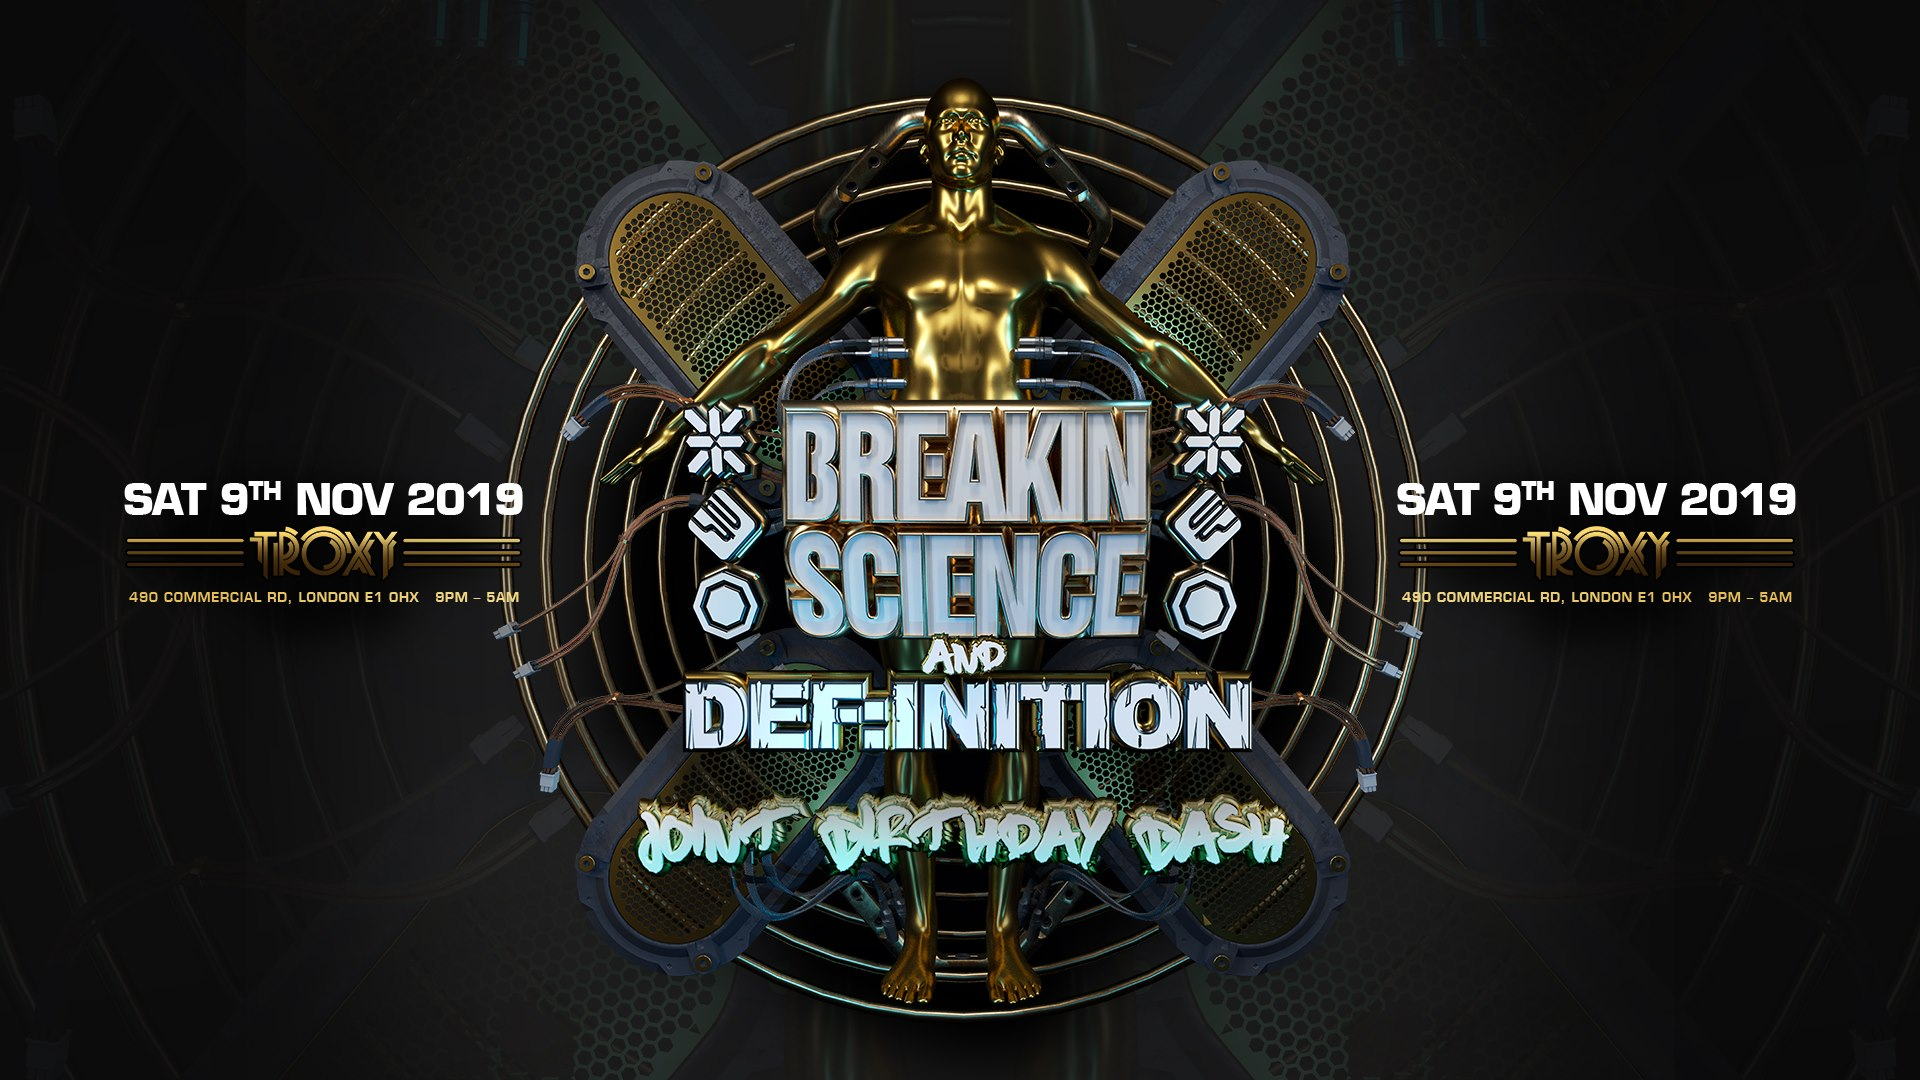 Breakin Science & Def:inition Joint Birthday Bash 2019